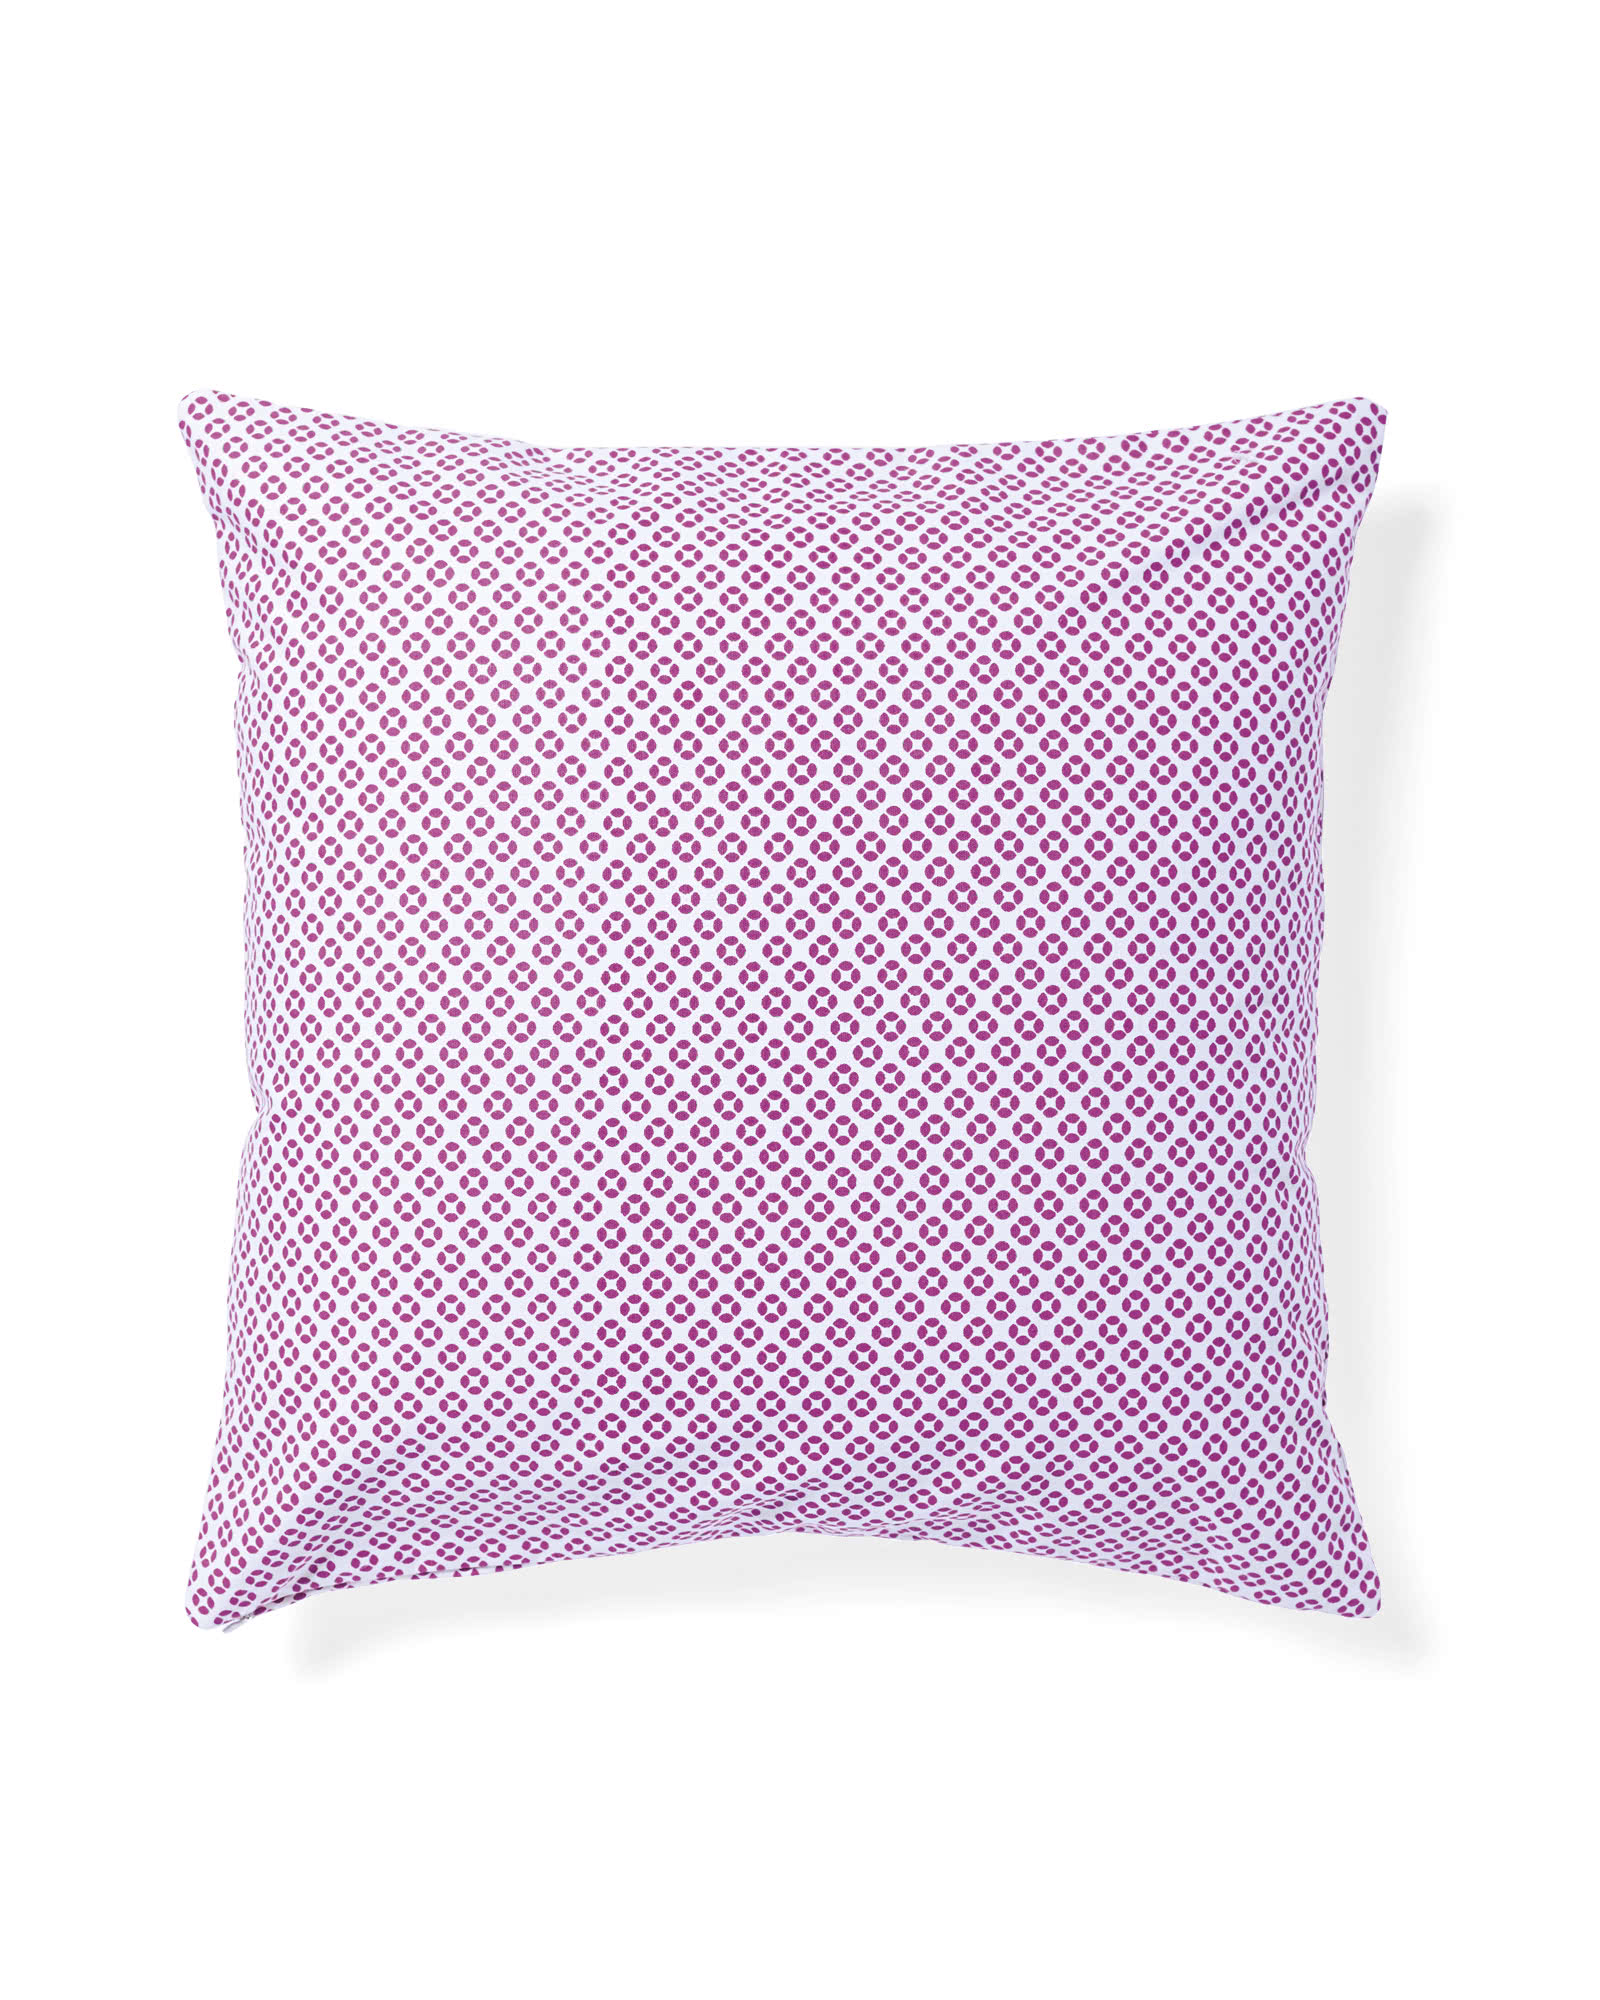 Cut Circle Pillow Cover